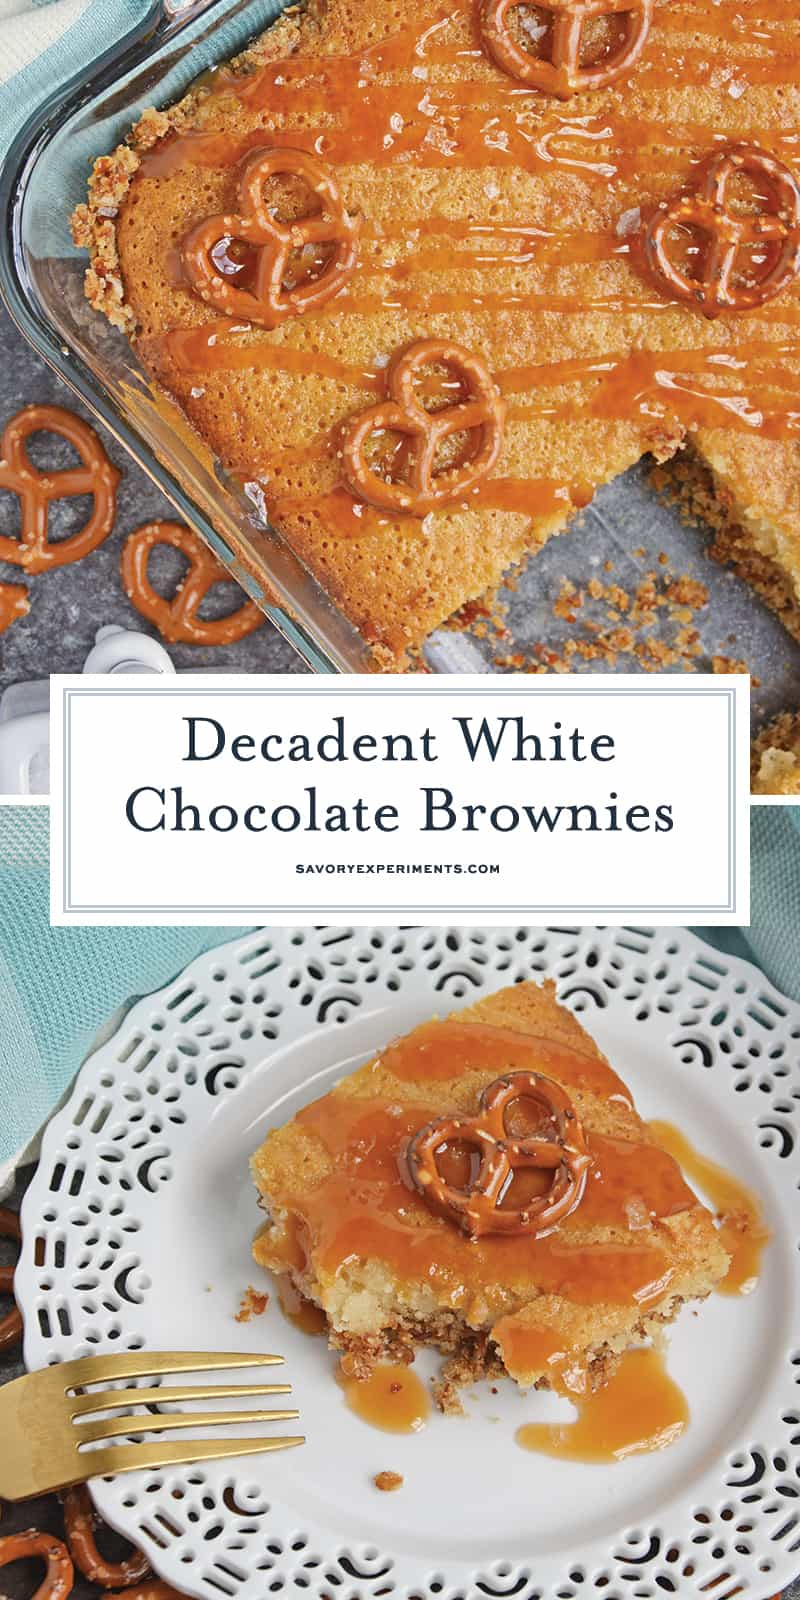 My White Chocolate Brownies are blonde brownies with a pretzel crust, a caramel drizzle, and a pinch of fleur de sel to make them even more addictive.